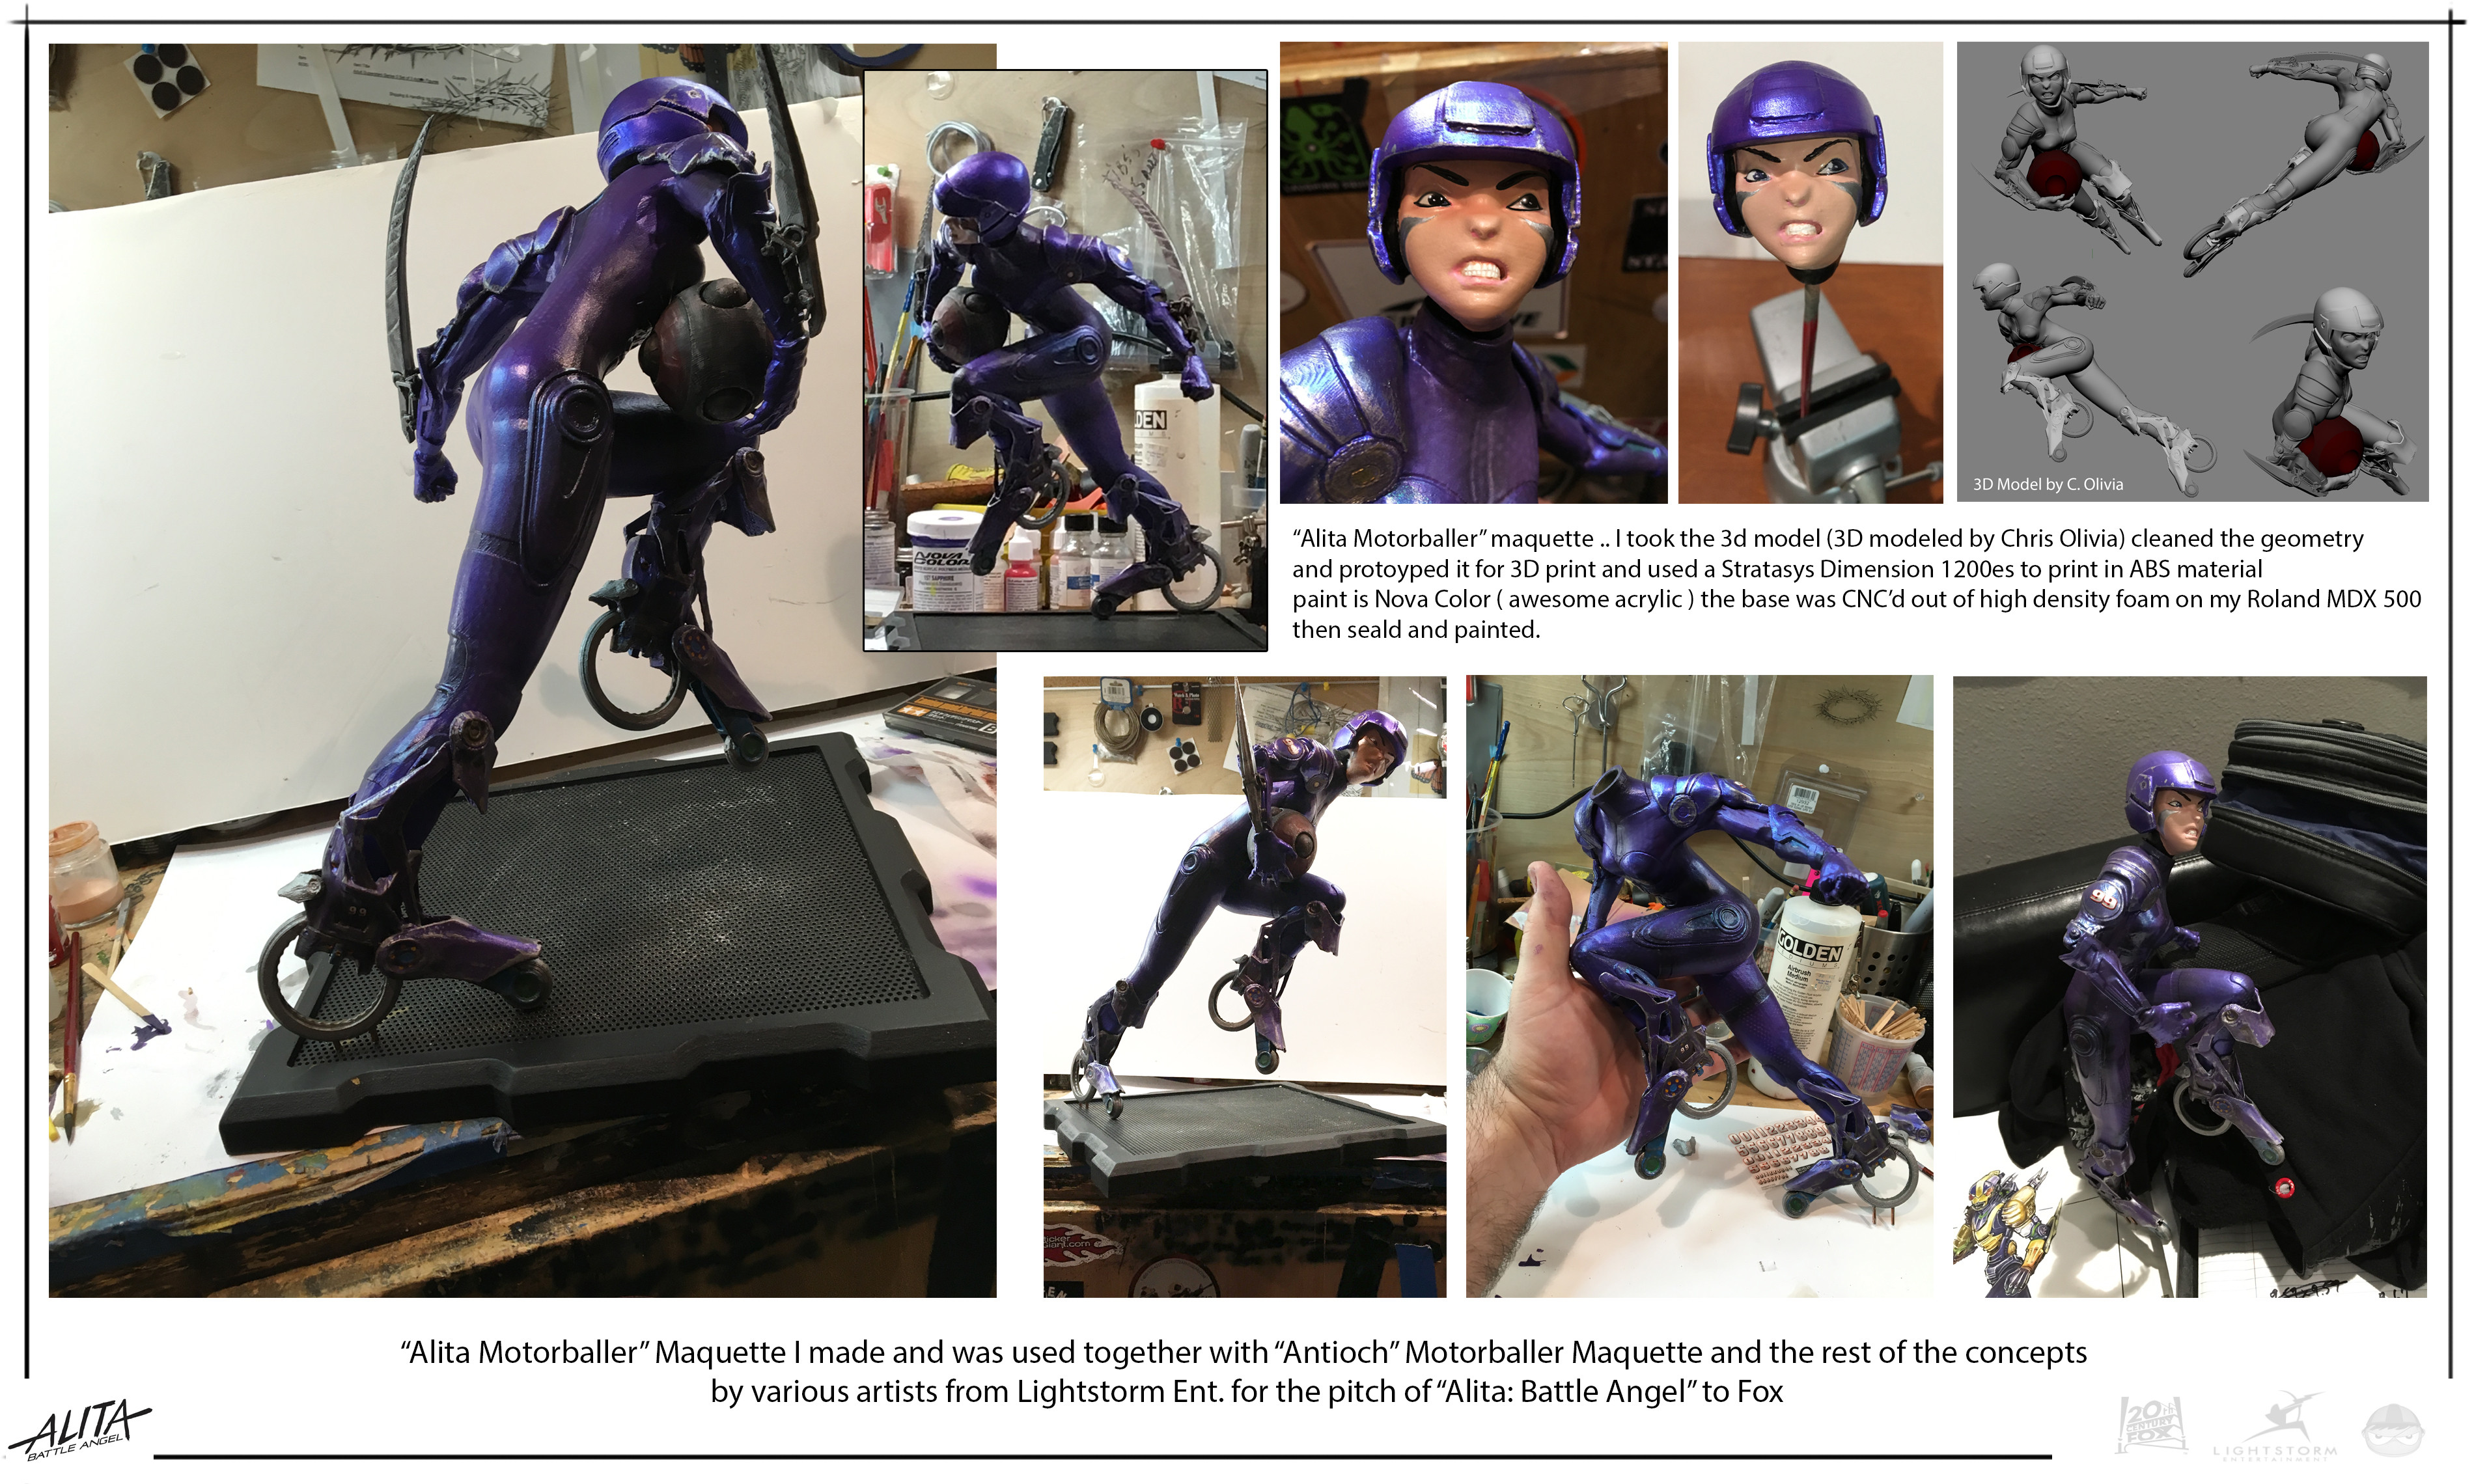 maquette of Alita as Motorballer ( 3d modeled by C. Olivia) protoyped and prepped for 3D print in ABS by me. I also painted and did the fabrication. CNC'd the base . Maquette was used in the pitch to FOX.